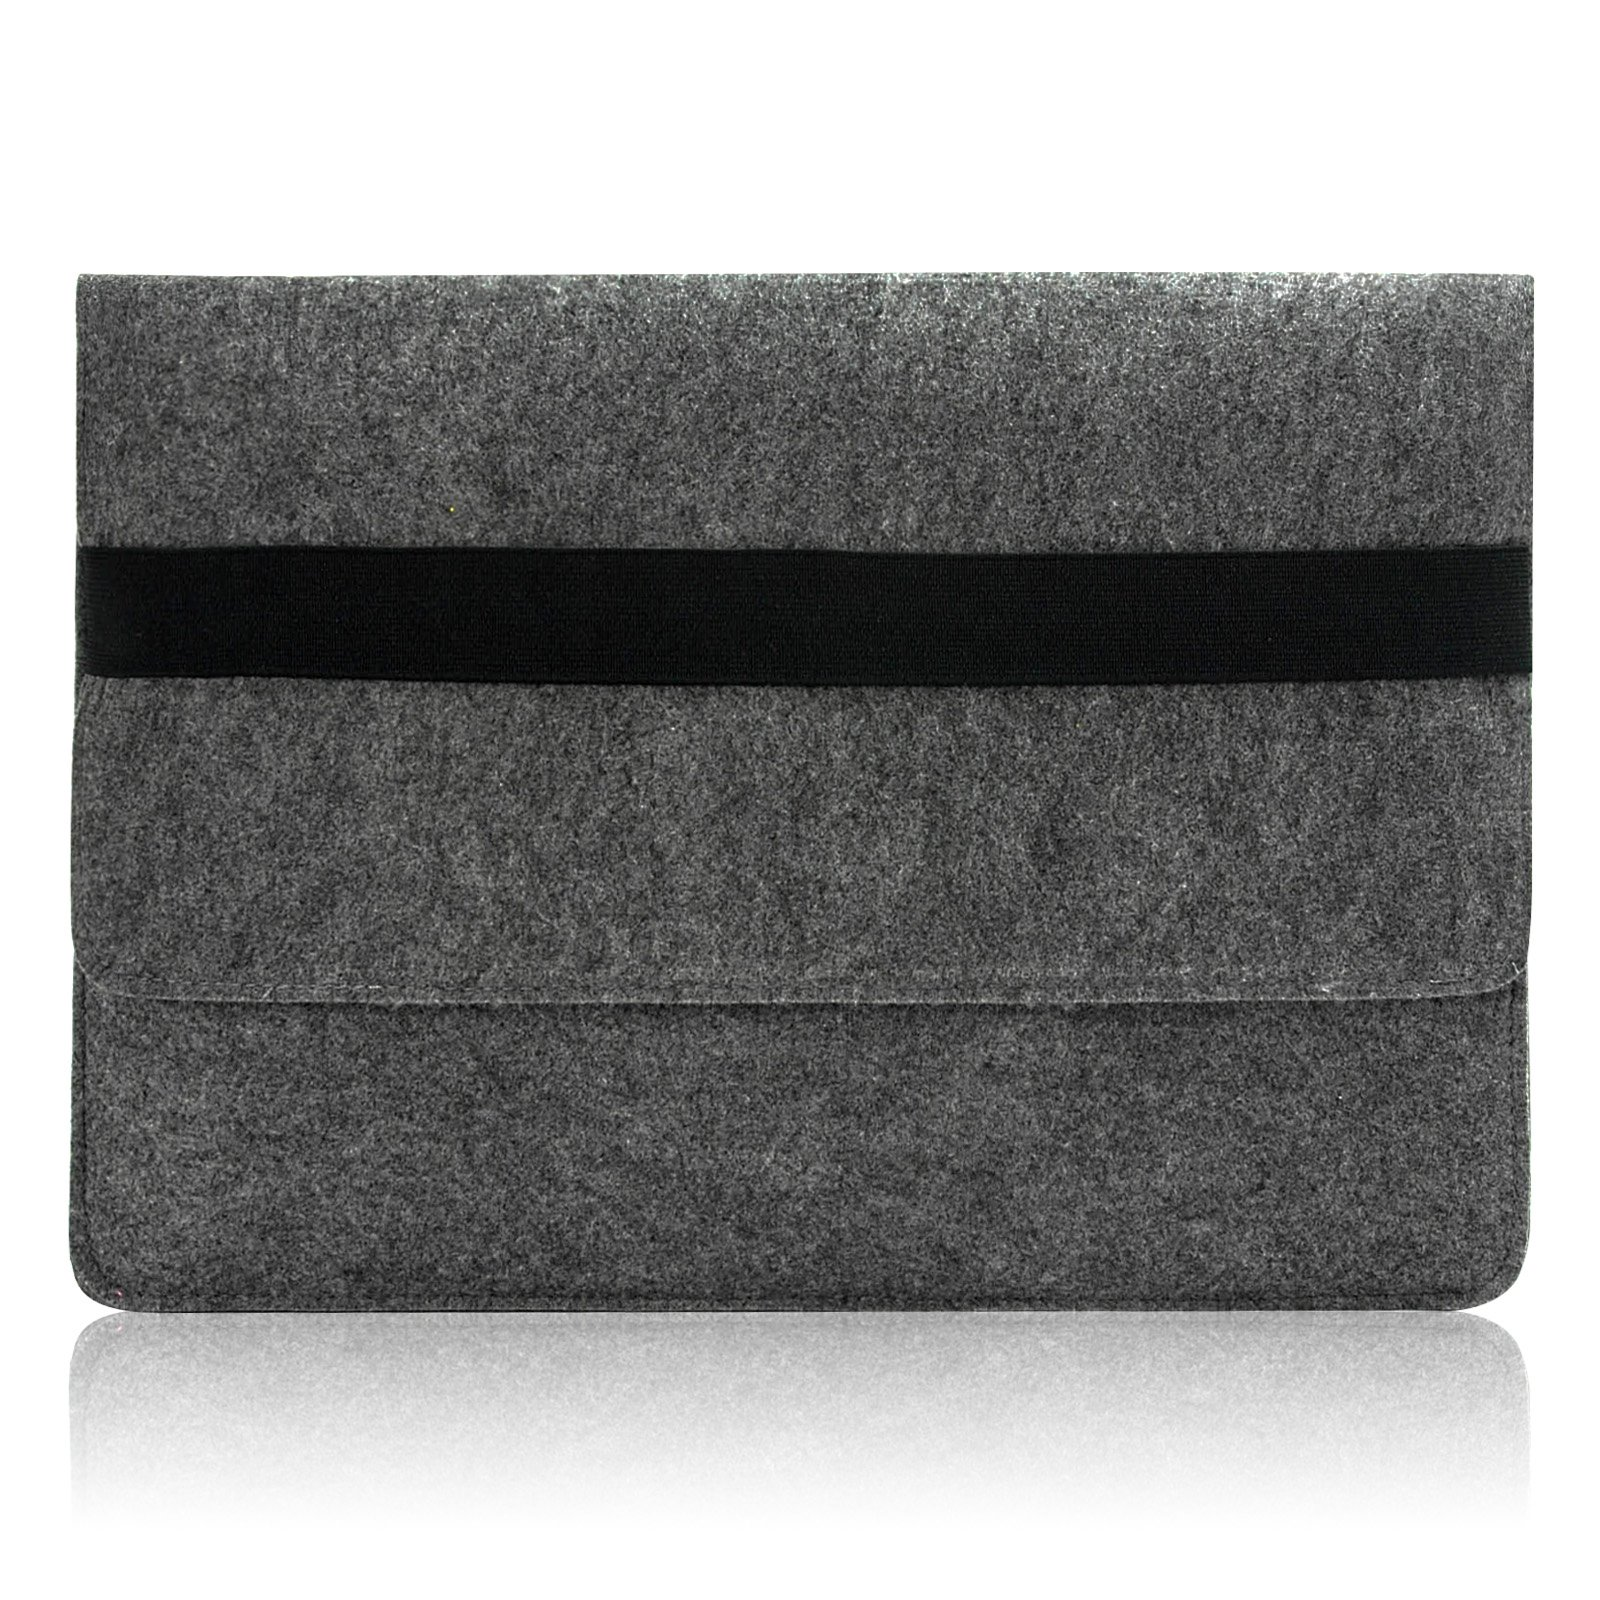 "Sinoguo Gray Felt Case Sleeve Pouch with 2 Pocket Inside for Macbook Air 11 Inch, Handmade Laptop Bag Holder Pouch with Black Elastic Band for 11"" Macbook Air and Most Popular 11-11.6 Inches Laptop / Notebook / Ultrabook /Netbook"